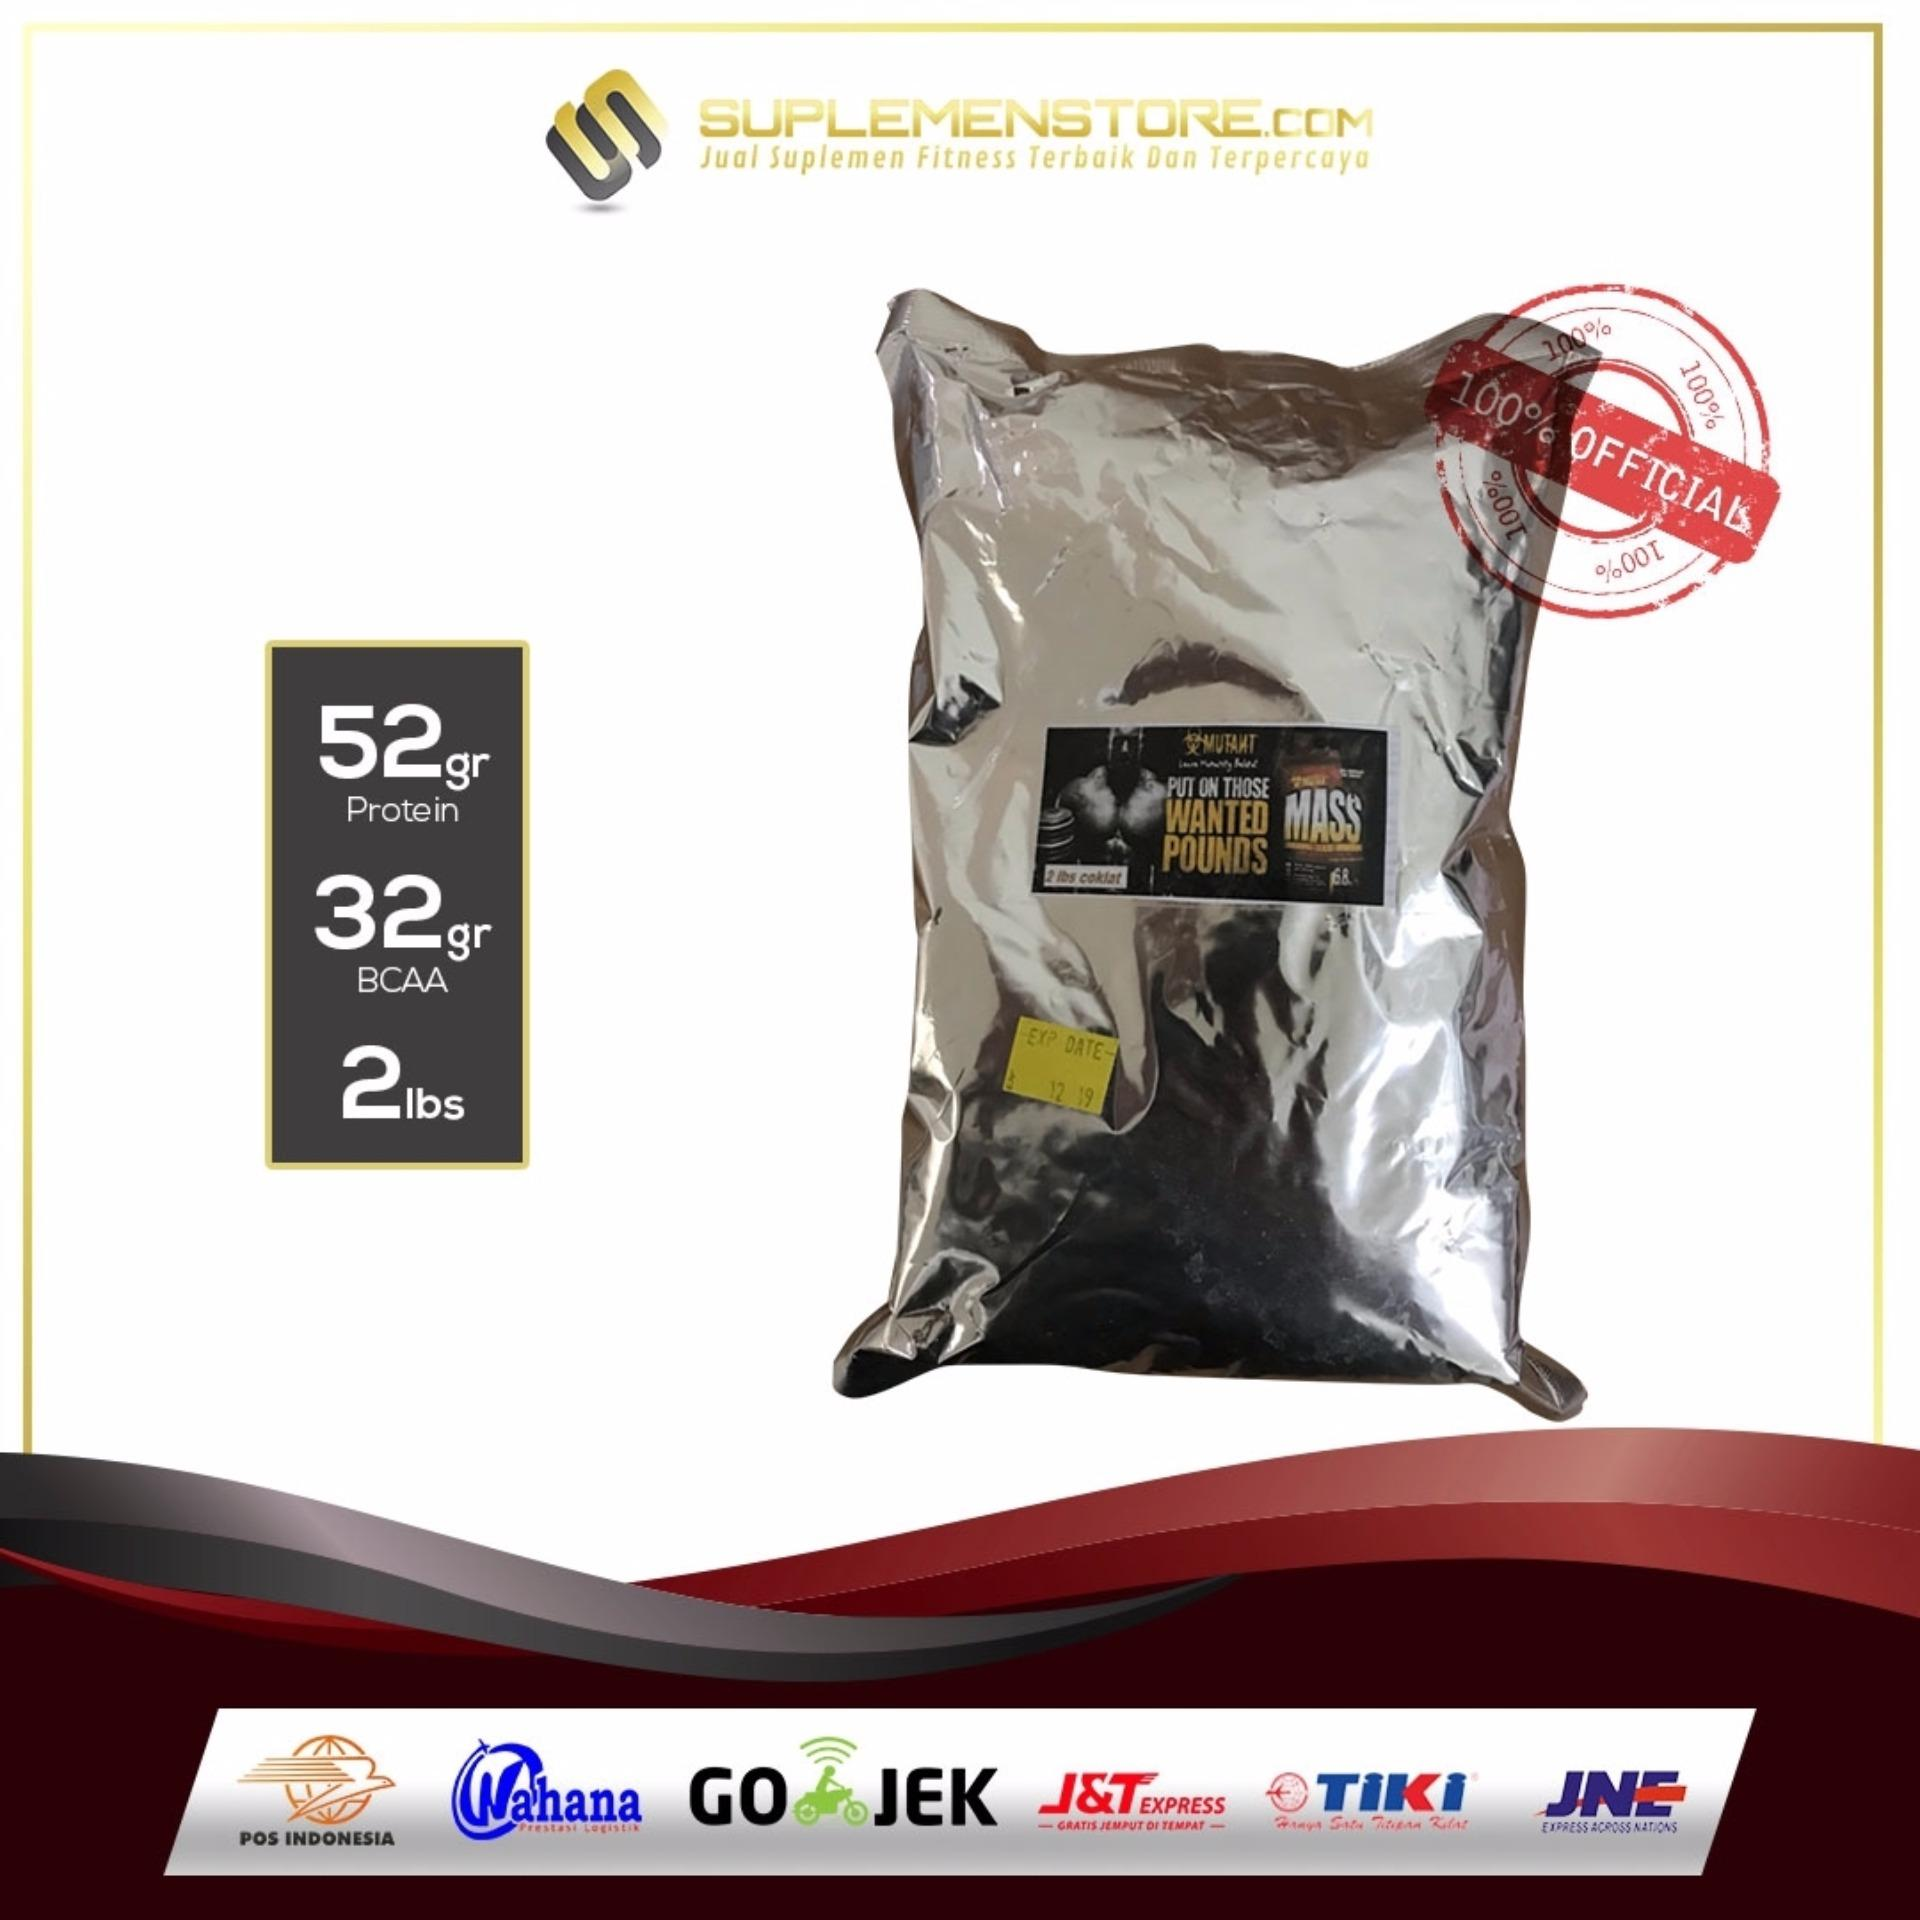 New Packaging 12 Lbs Resmi Lisensi Dni Super Mass Gainer 12 lbs Source .